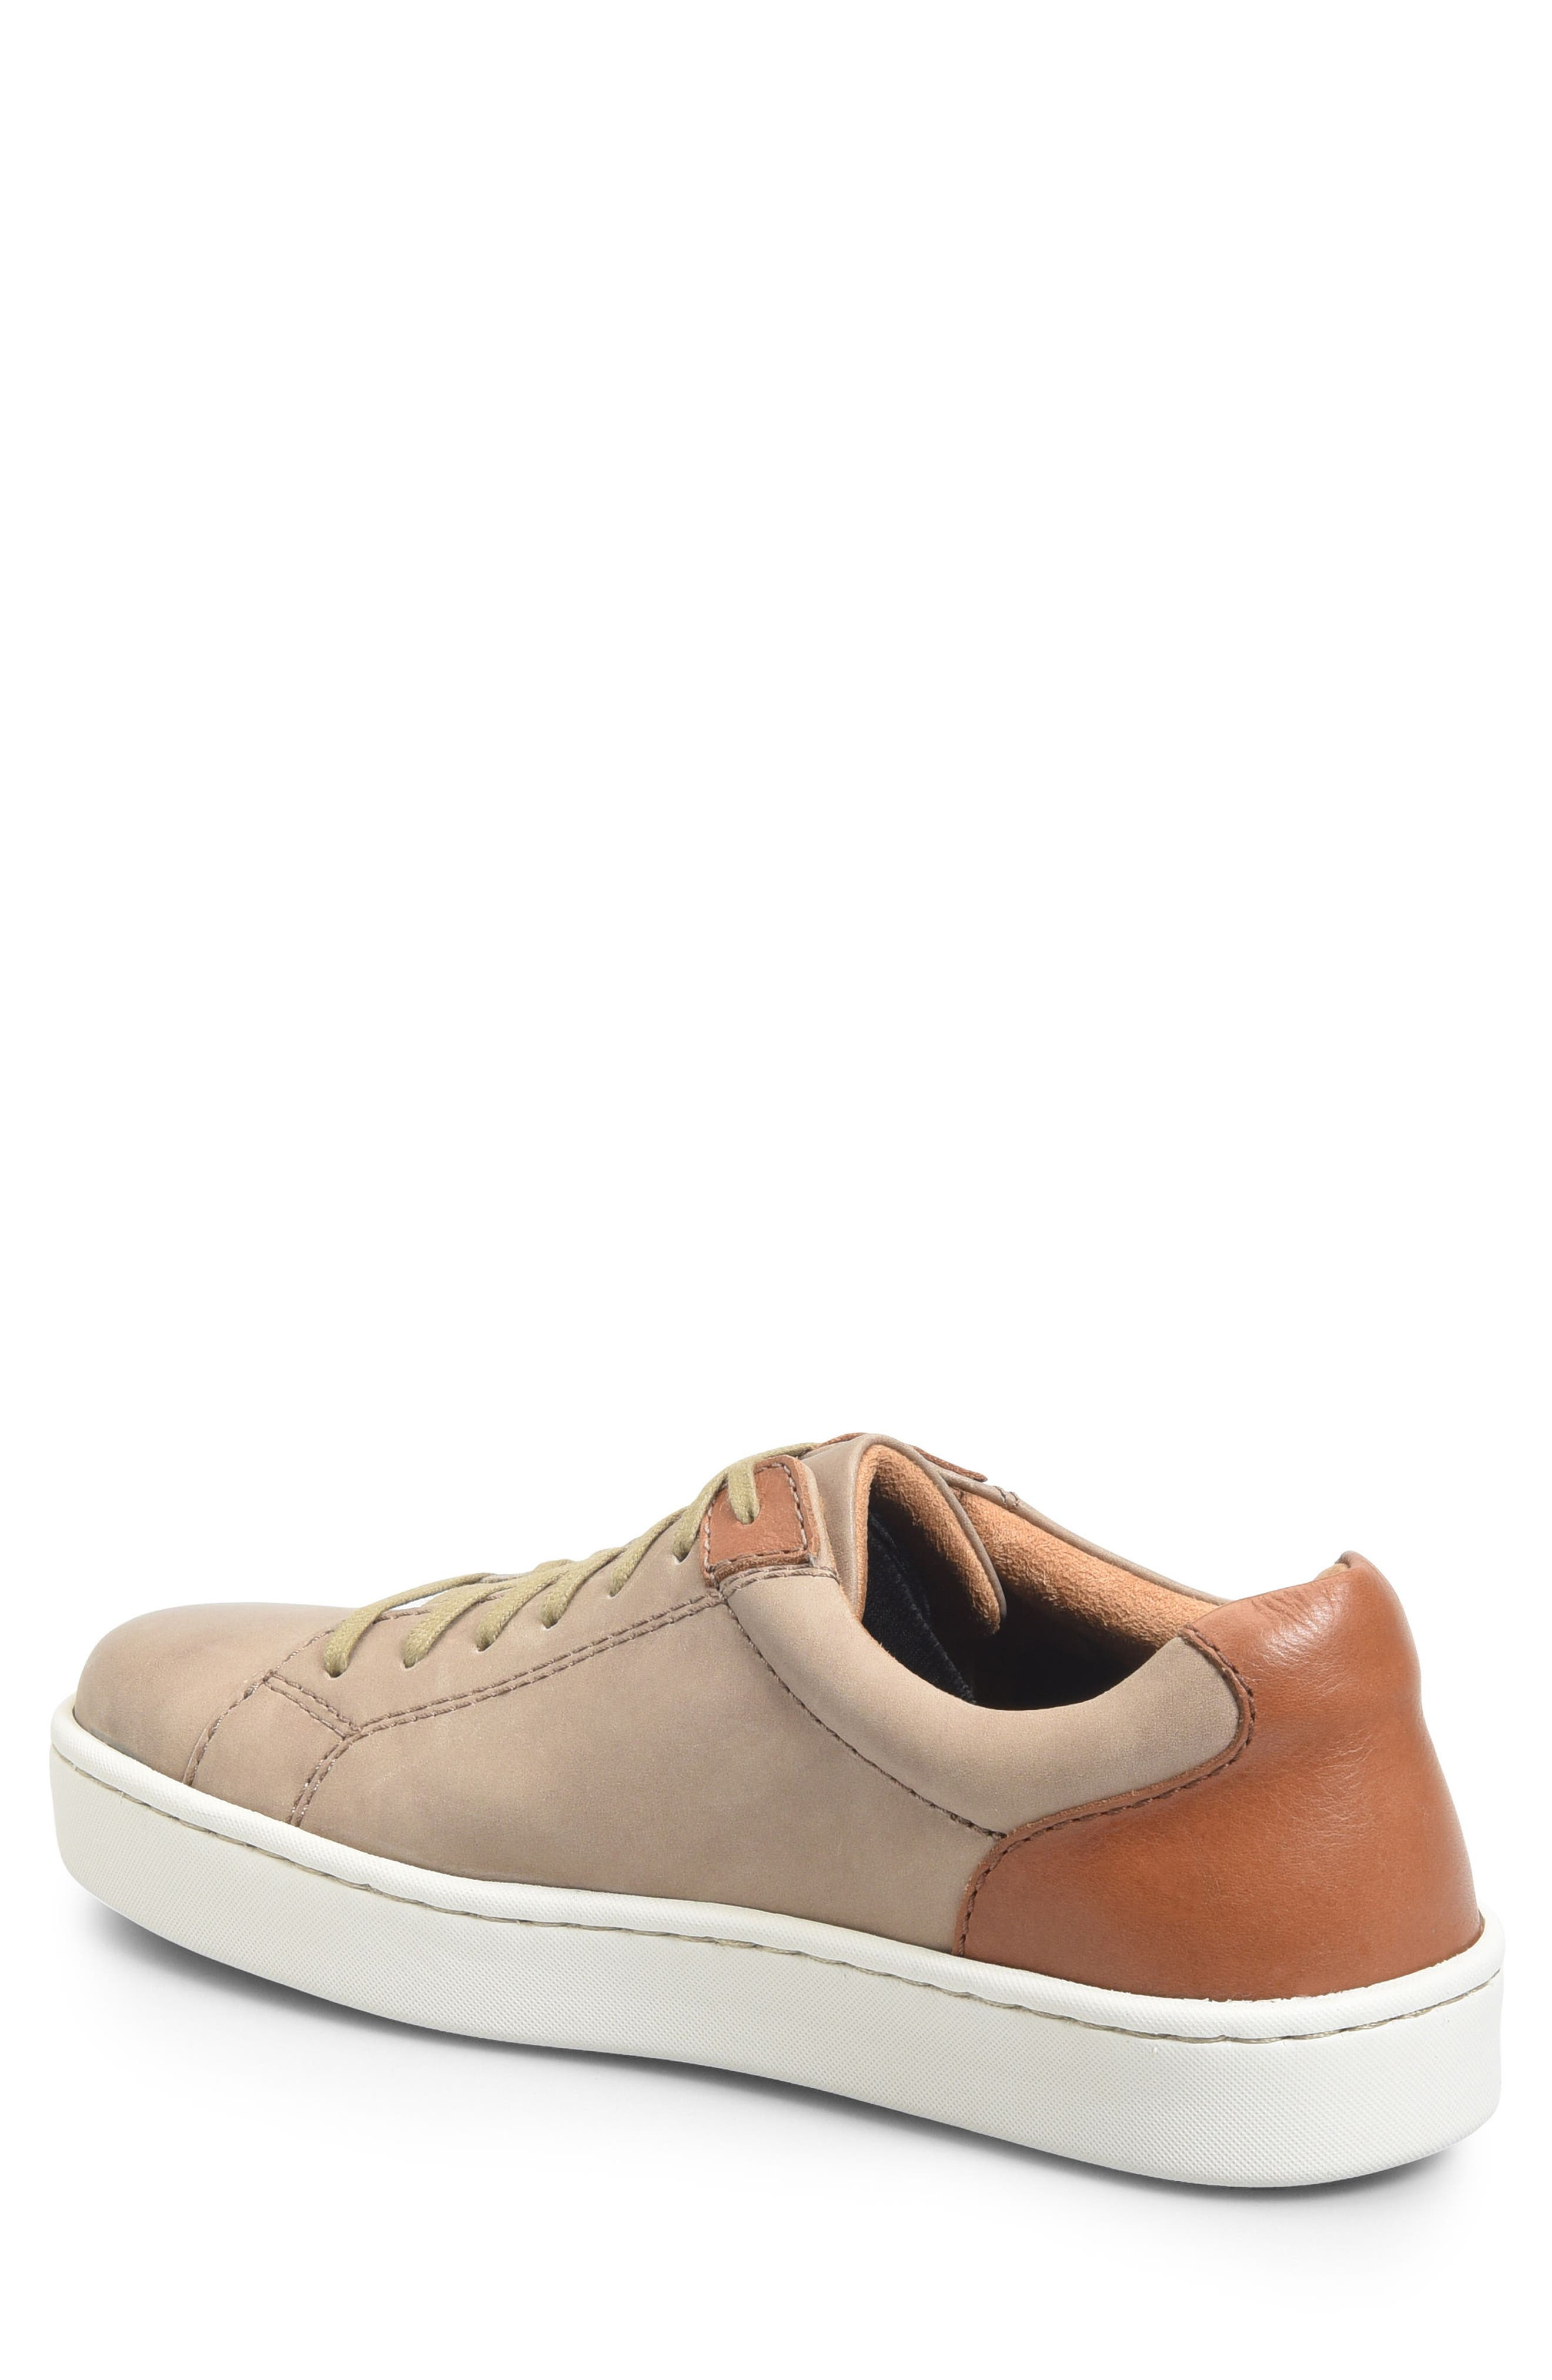 Jib Sneaker,                             Alternate thumbnail 2, color,                             Taupe/ Brown Leather